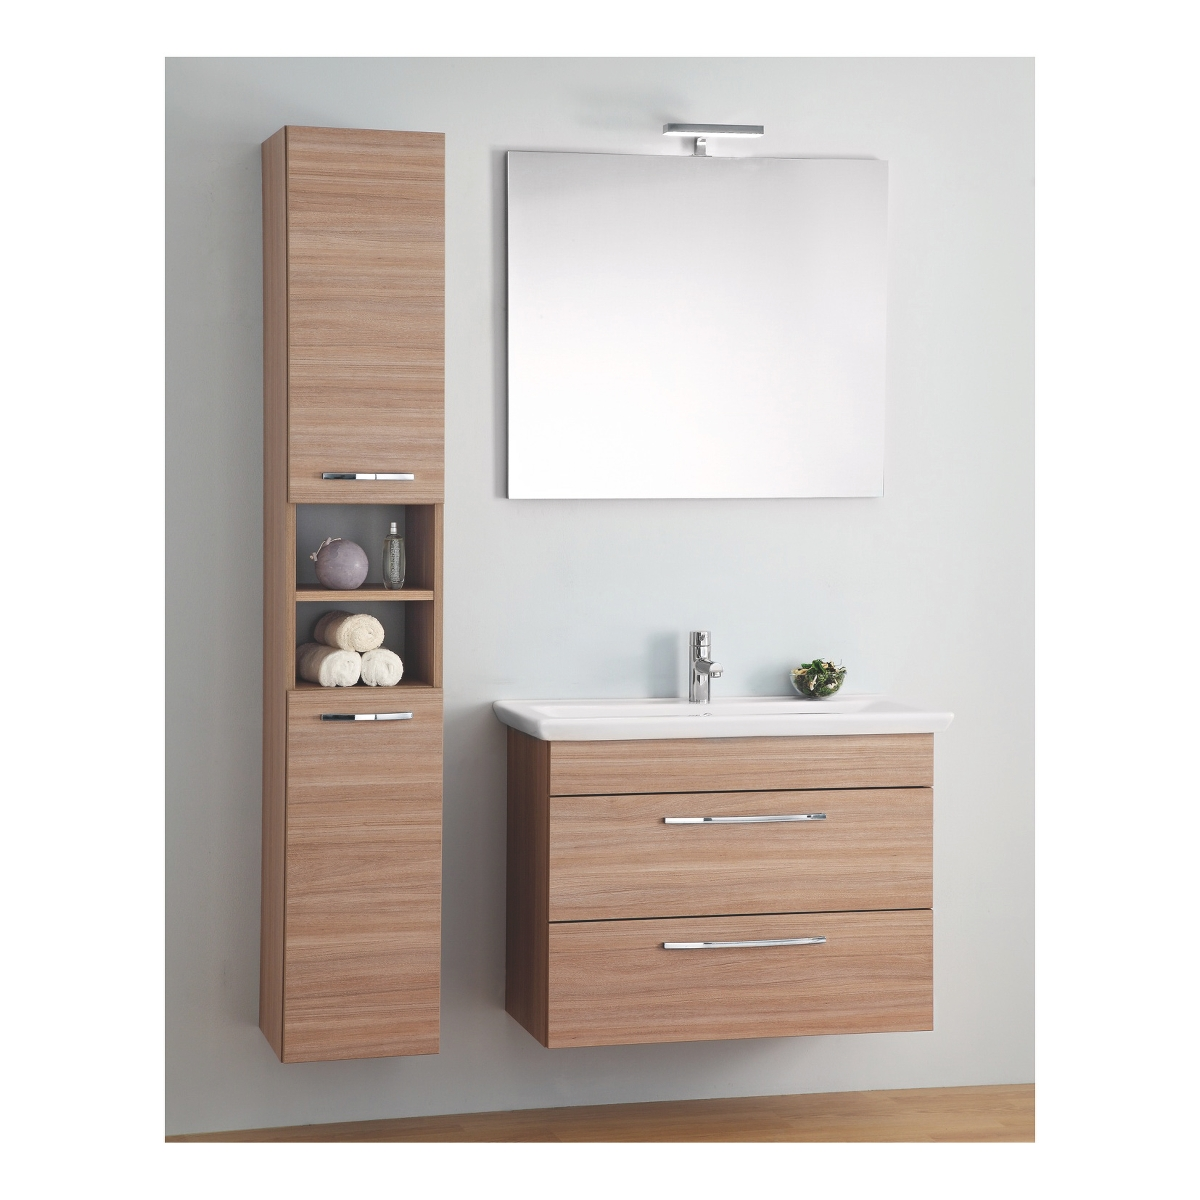 Leroy merlin mobile bagno gi 115 mobili bagno bathrooms pinterest wood bathroom and - Pensili bagno leroy merlin ...